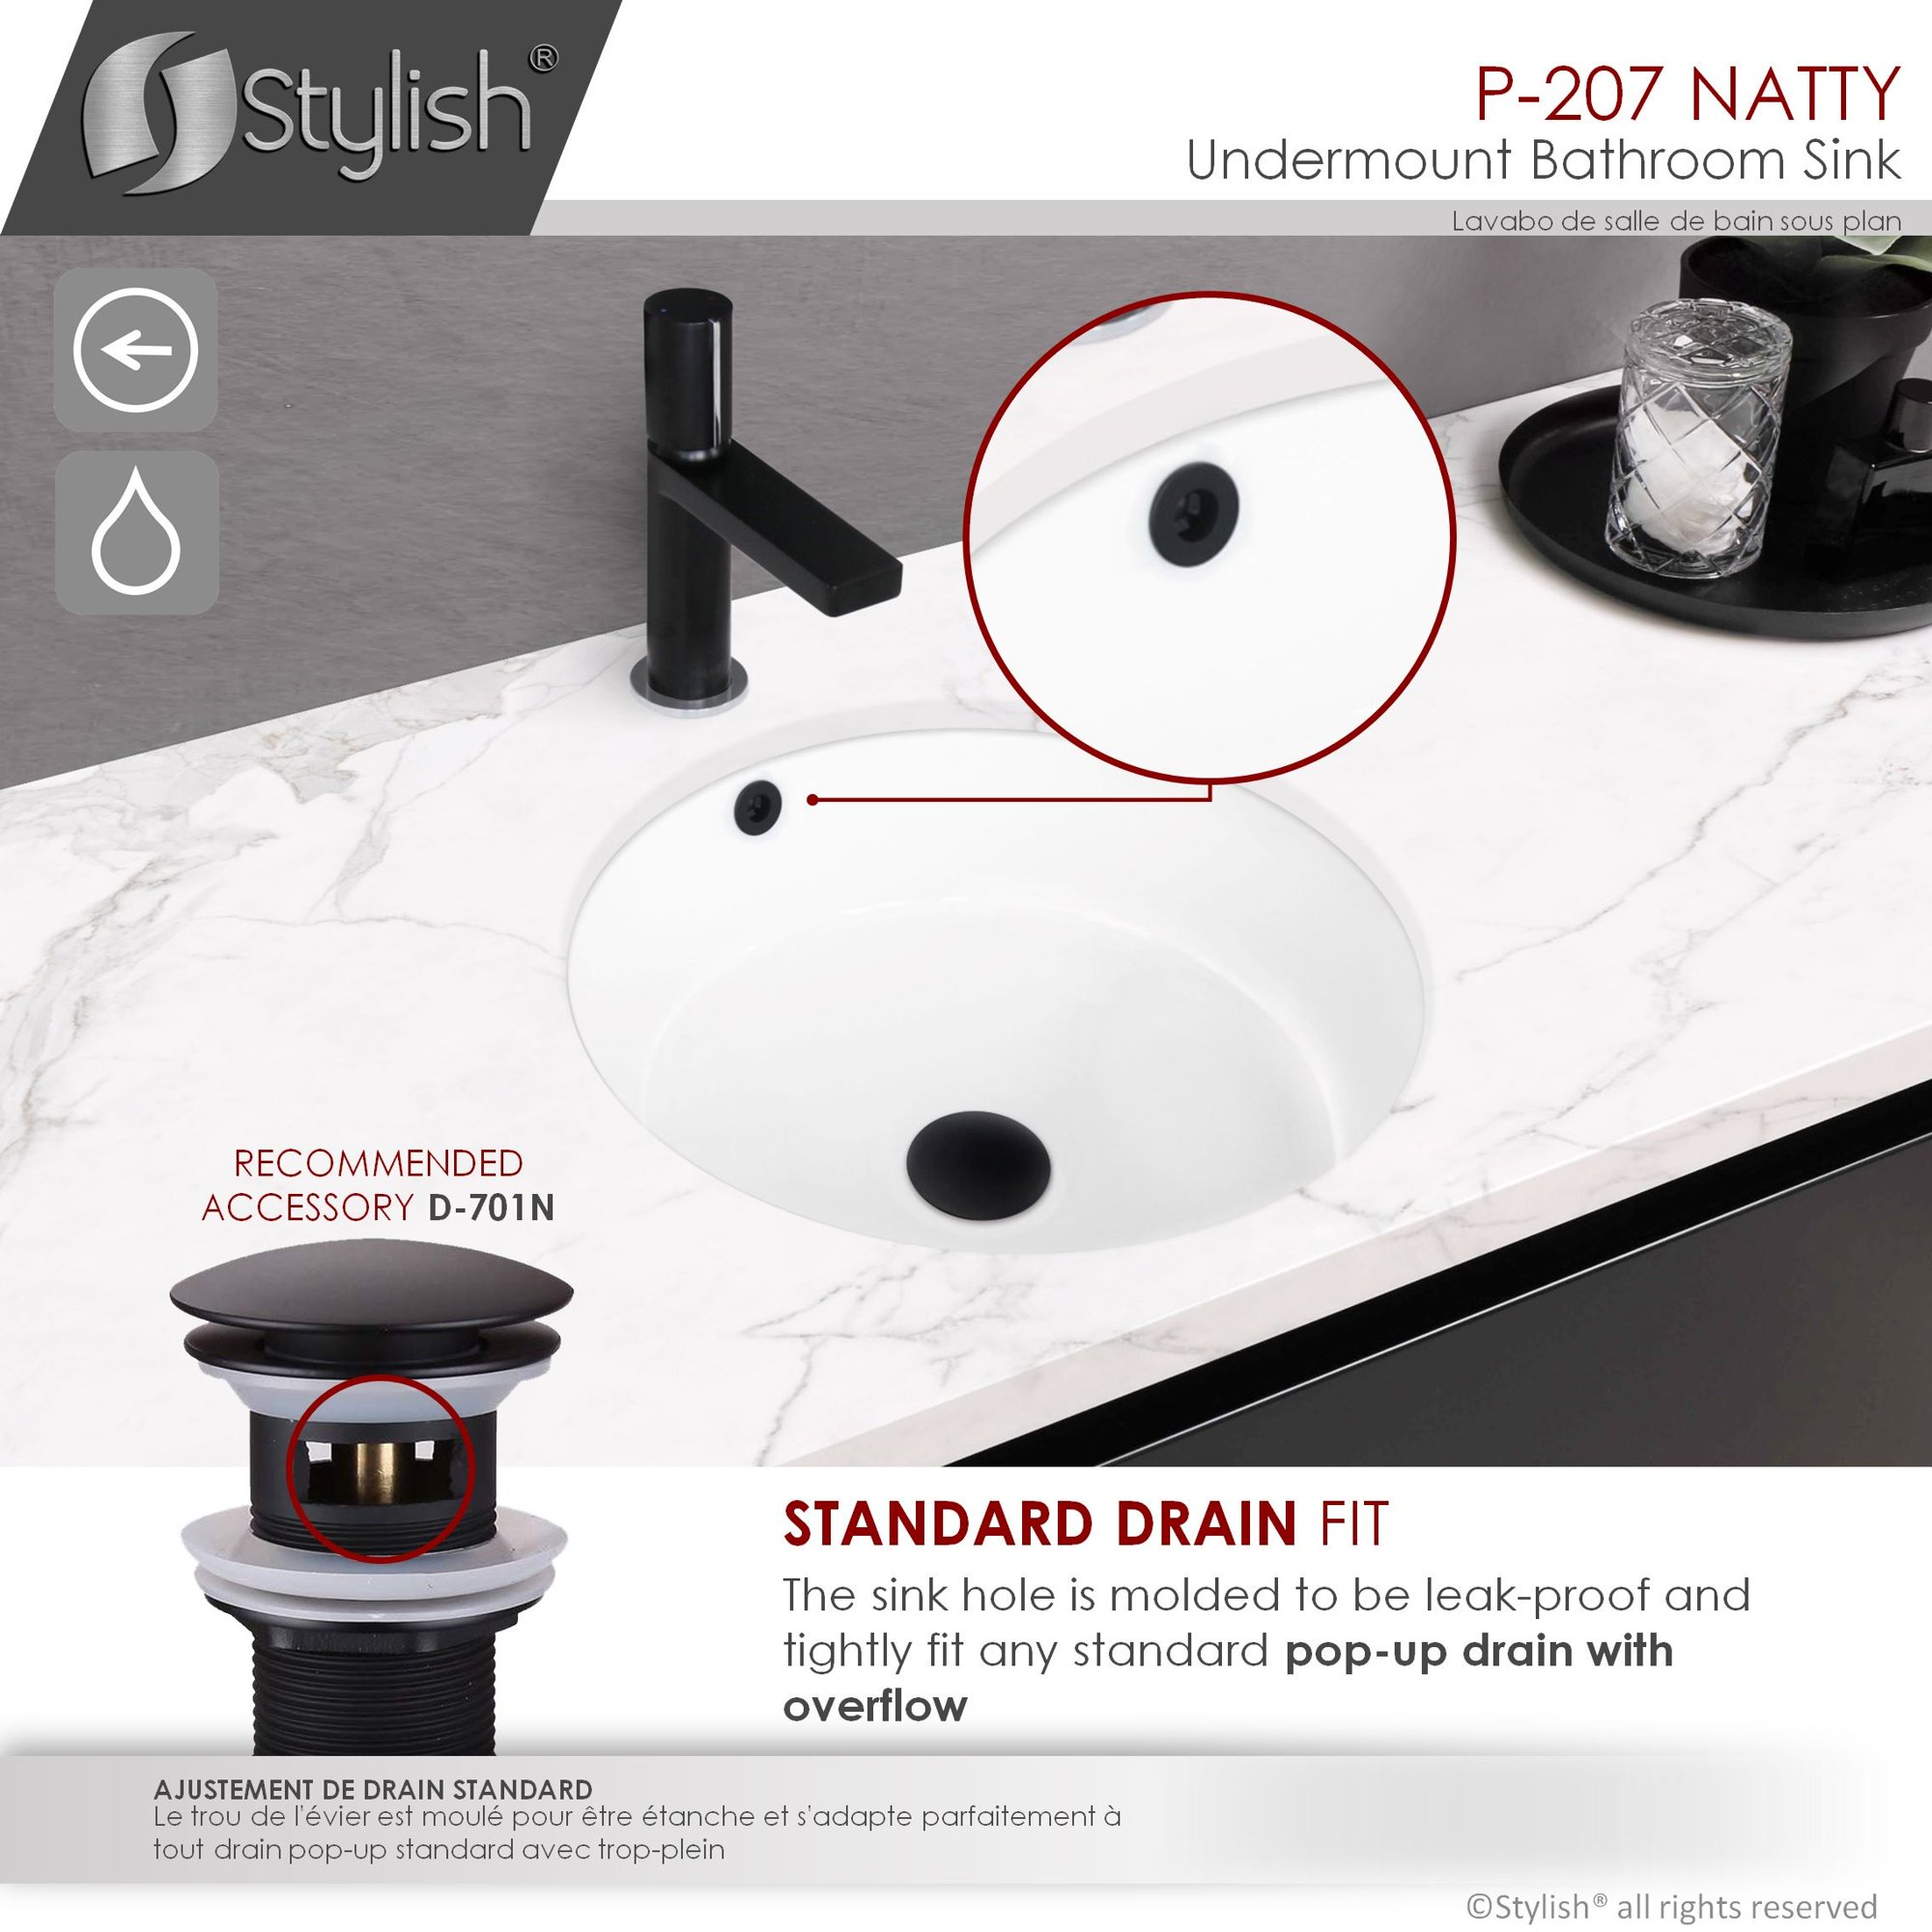 Ul Li Built Per Standards P This Bathroom Sink Has Been Build Meeting The Highest Standards For North America It Is Cupc Certified And Its Standard Drain Opening Works With Most Pop Up Drains P Li Li Quality Undermount Sink